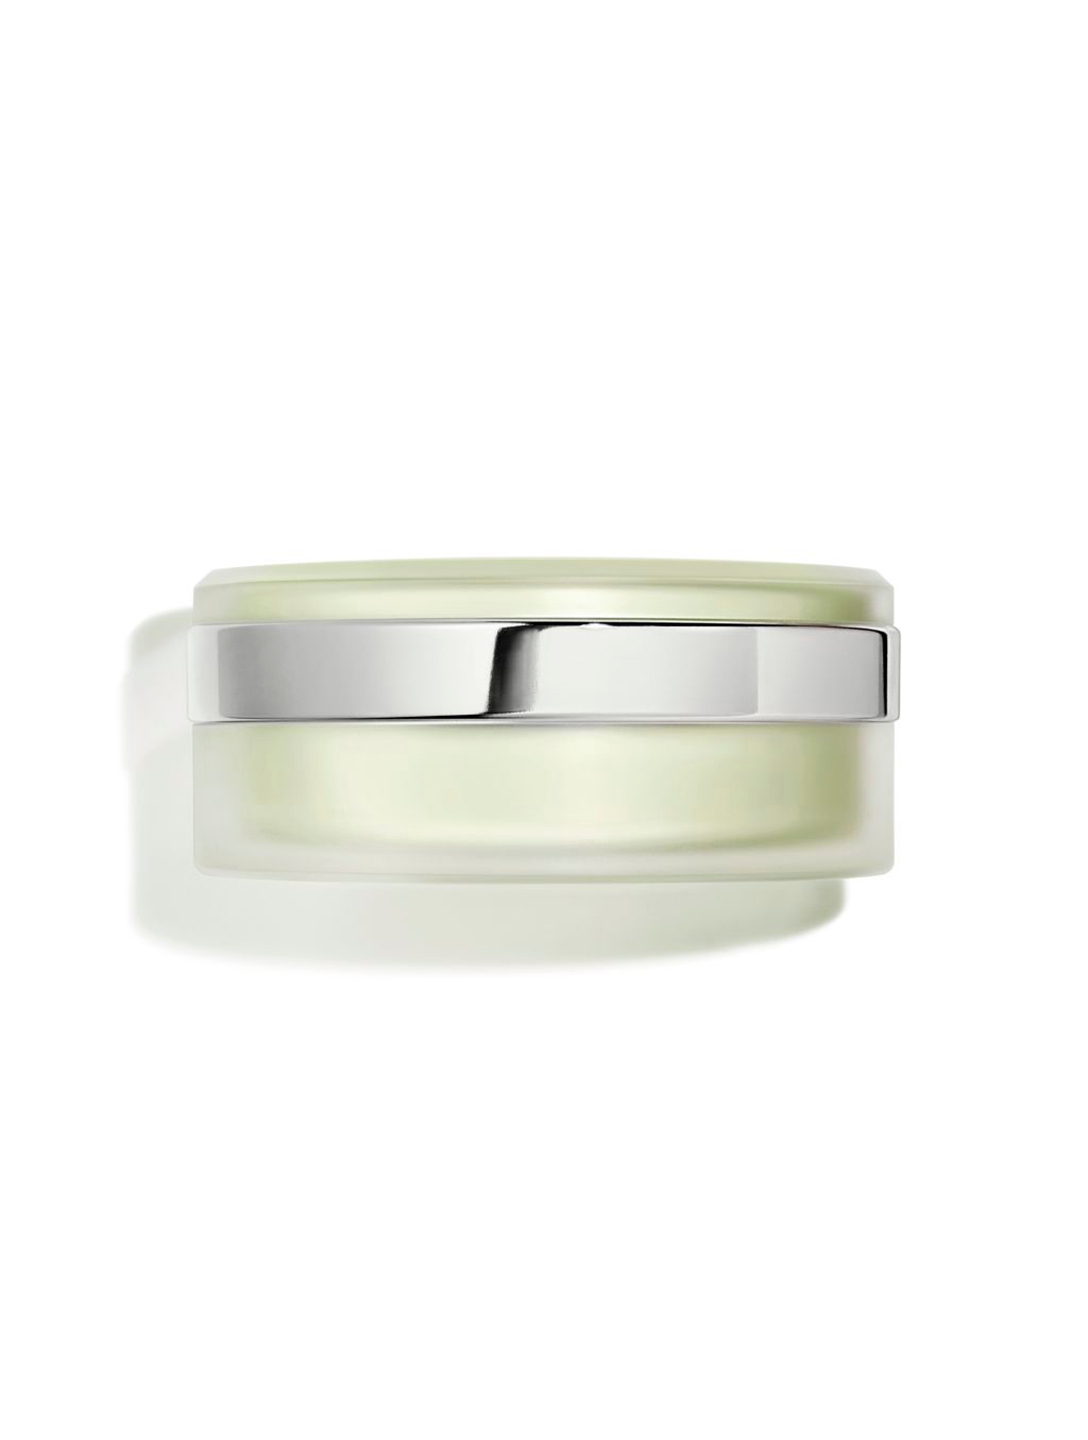 CHANEL Moisturising Body Cream CHANEL